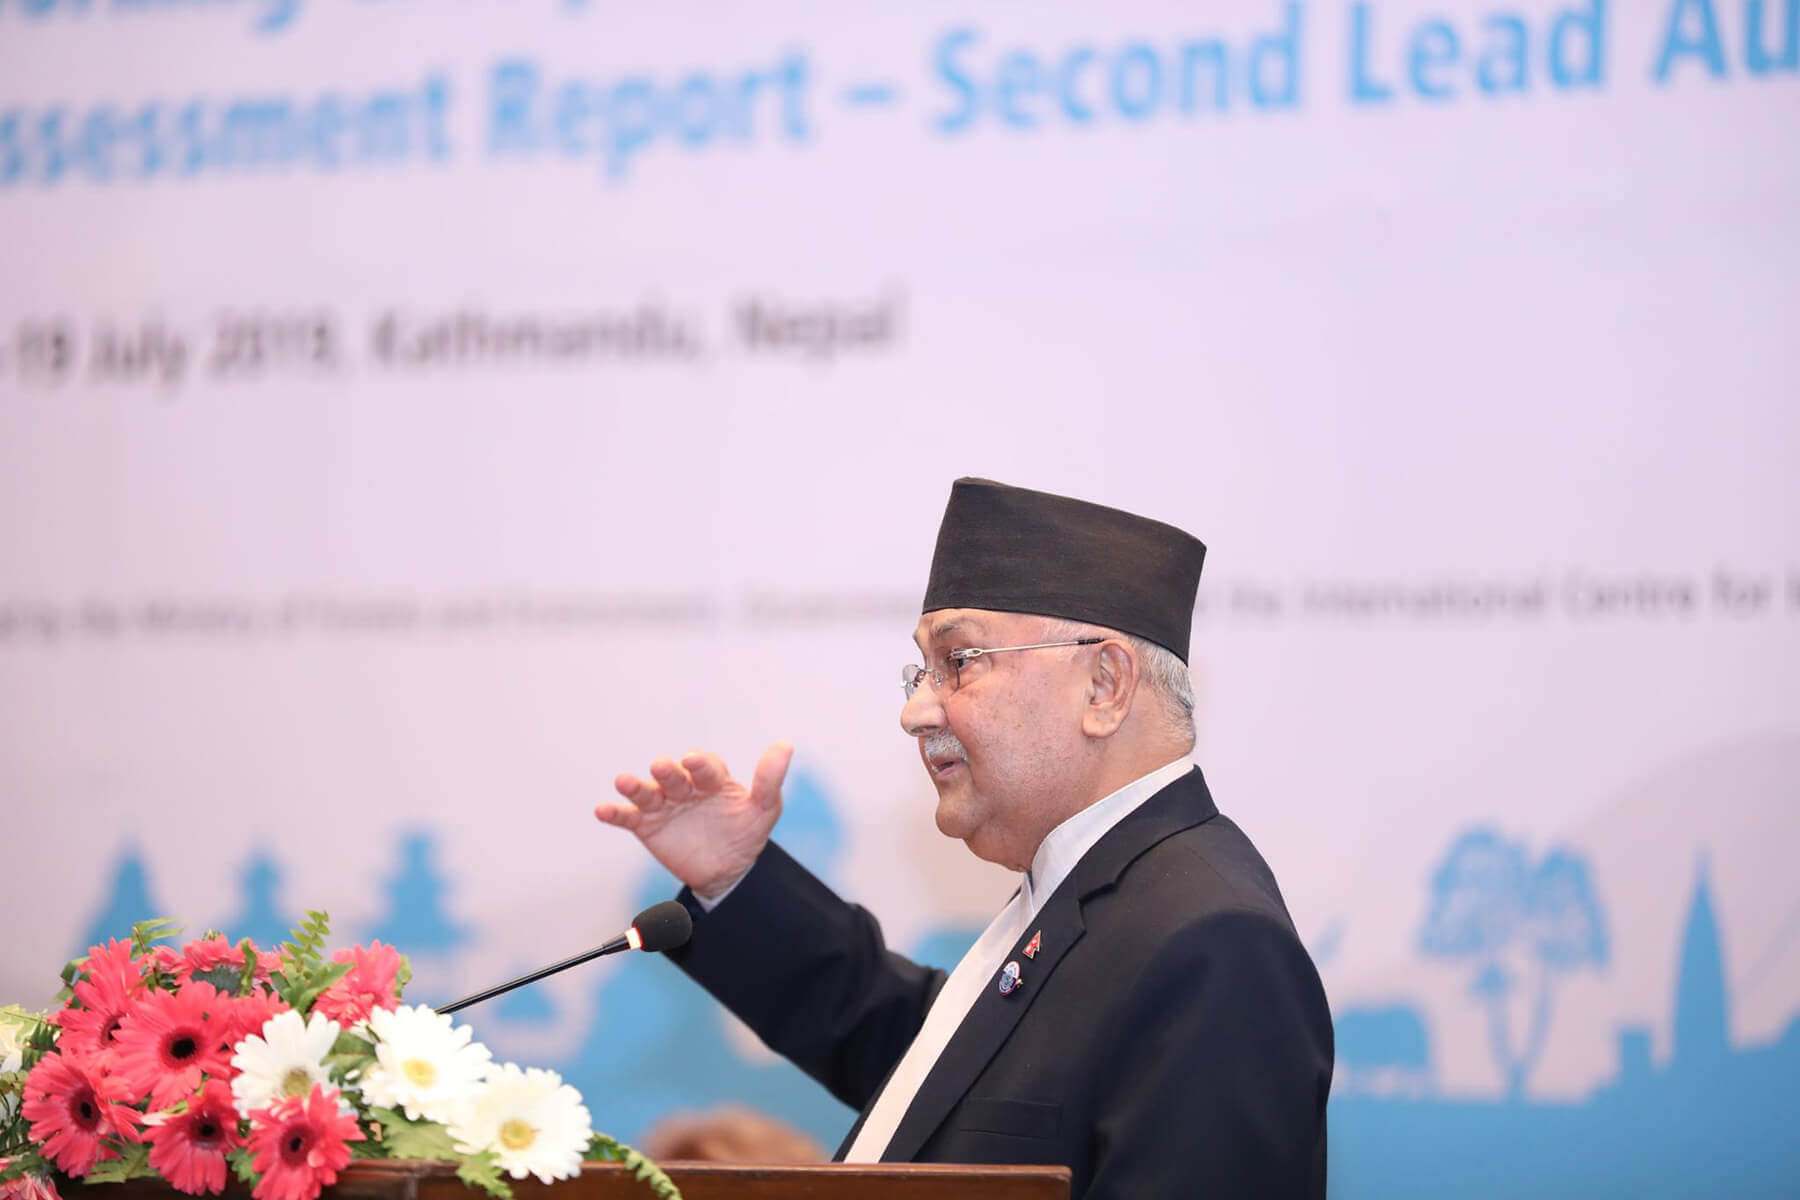 Prime Minister KP Oli during the inauguration of Second Lead Author meeting of the Inter-governmental Panel on Climate Change (IPCC) Working Group II in Kathmandu on Monday.